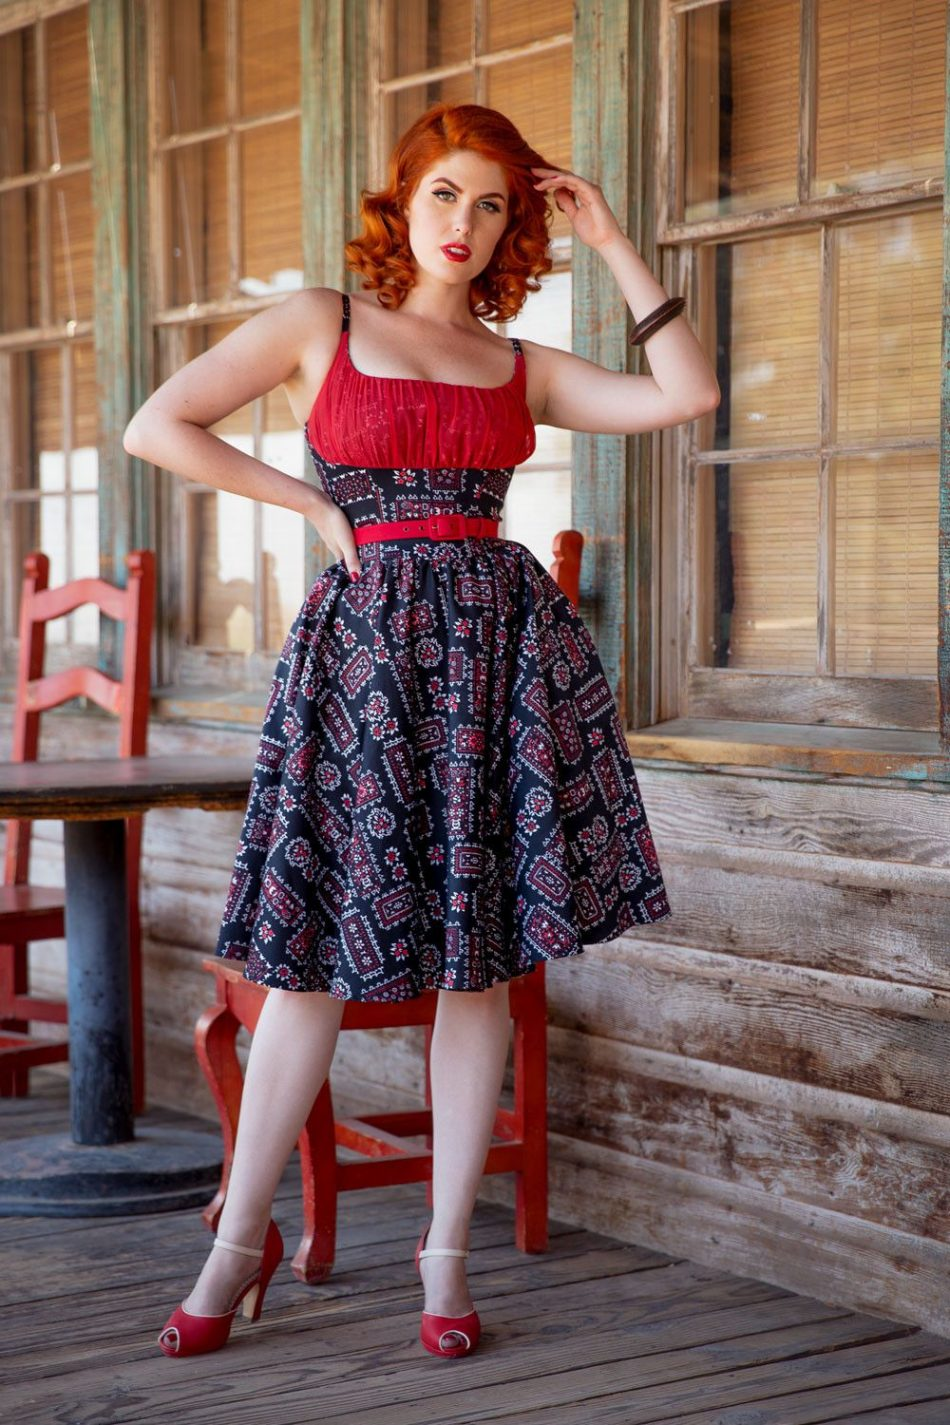 Pinup Couture Holly Swing Dress in Black Bandana Print | Pinup Girl Clothing